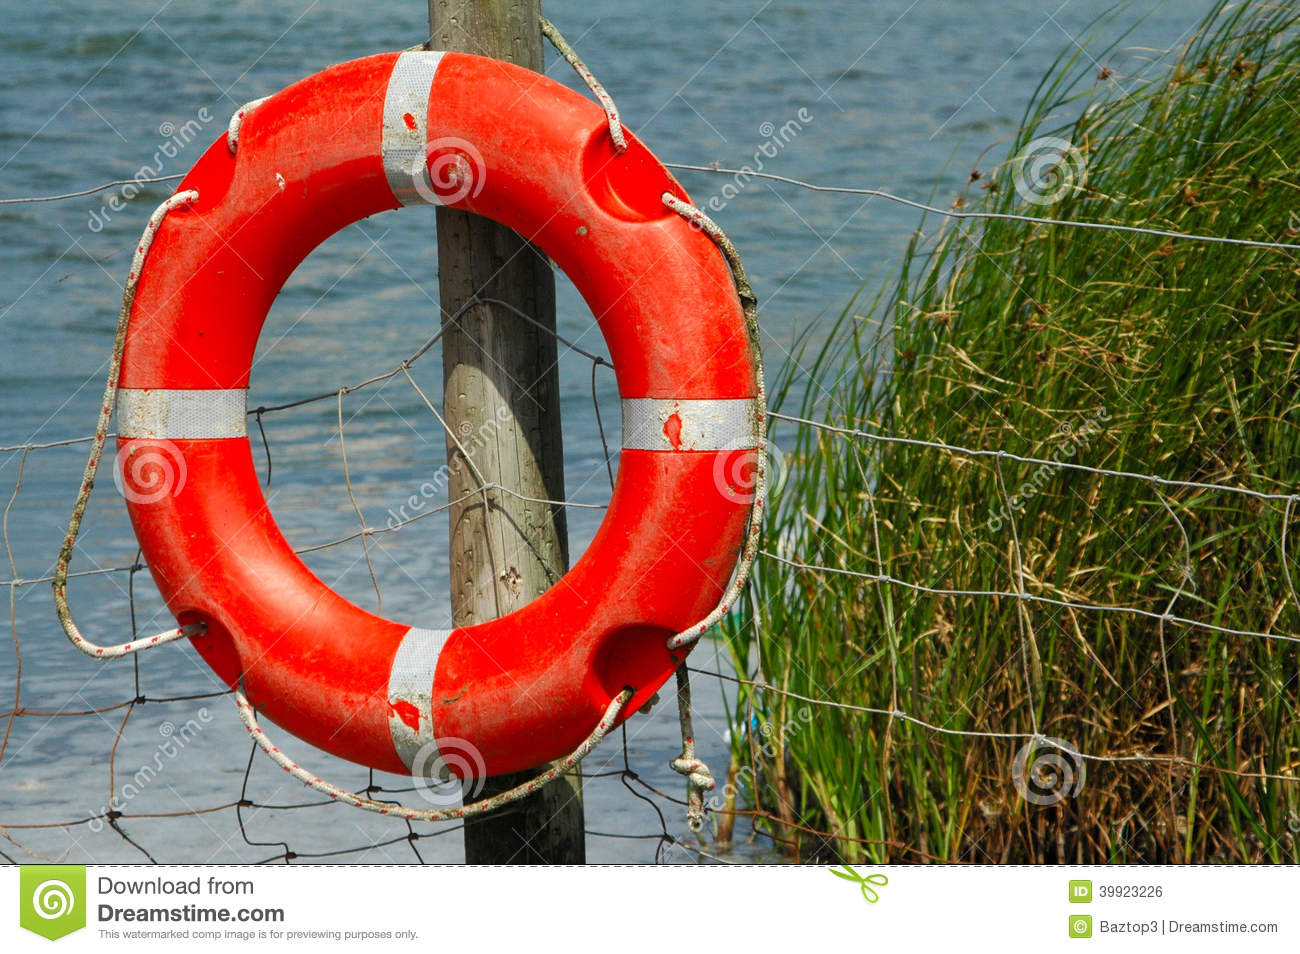 ring download rings device kiss boat lifebuoy lifeb flotation personal